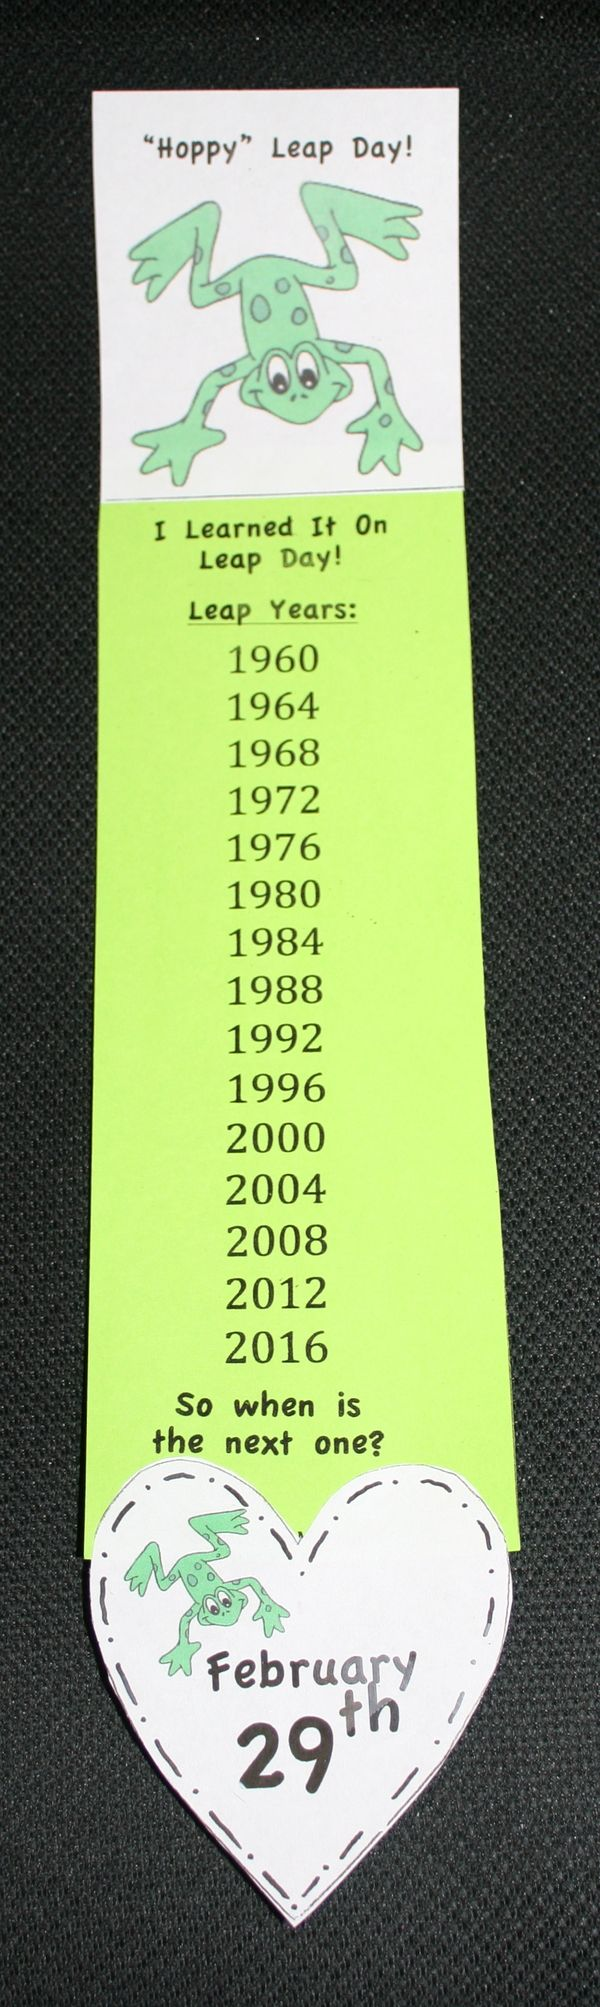 Leap Year activities: FREE Leap Year Big Banner Bookmark. A great math extension for Leap Day! Give students the 3 rules to figure out past and future Leap Years and have them answer the mystery question: When were the last Leap Years and when will the next one be? Finish up with the bookmark and a jump rope song!